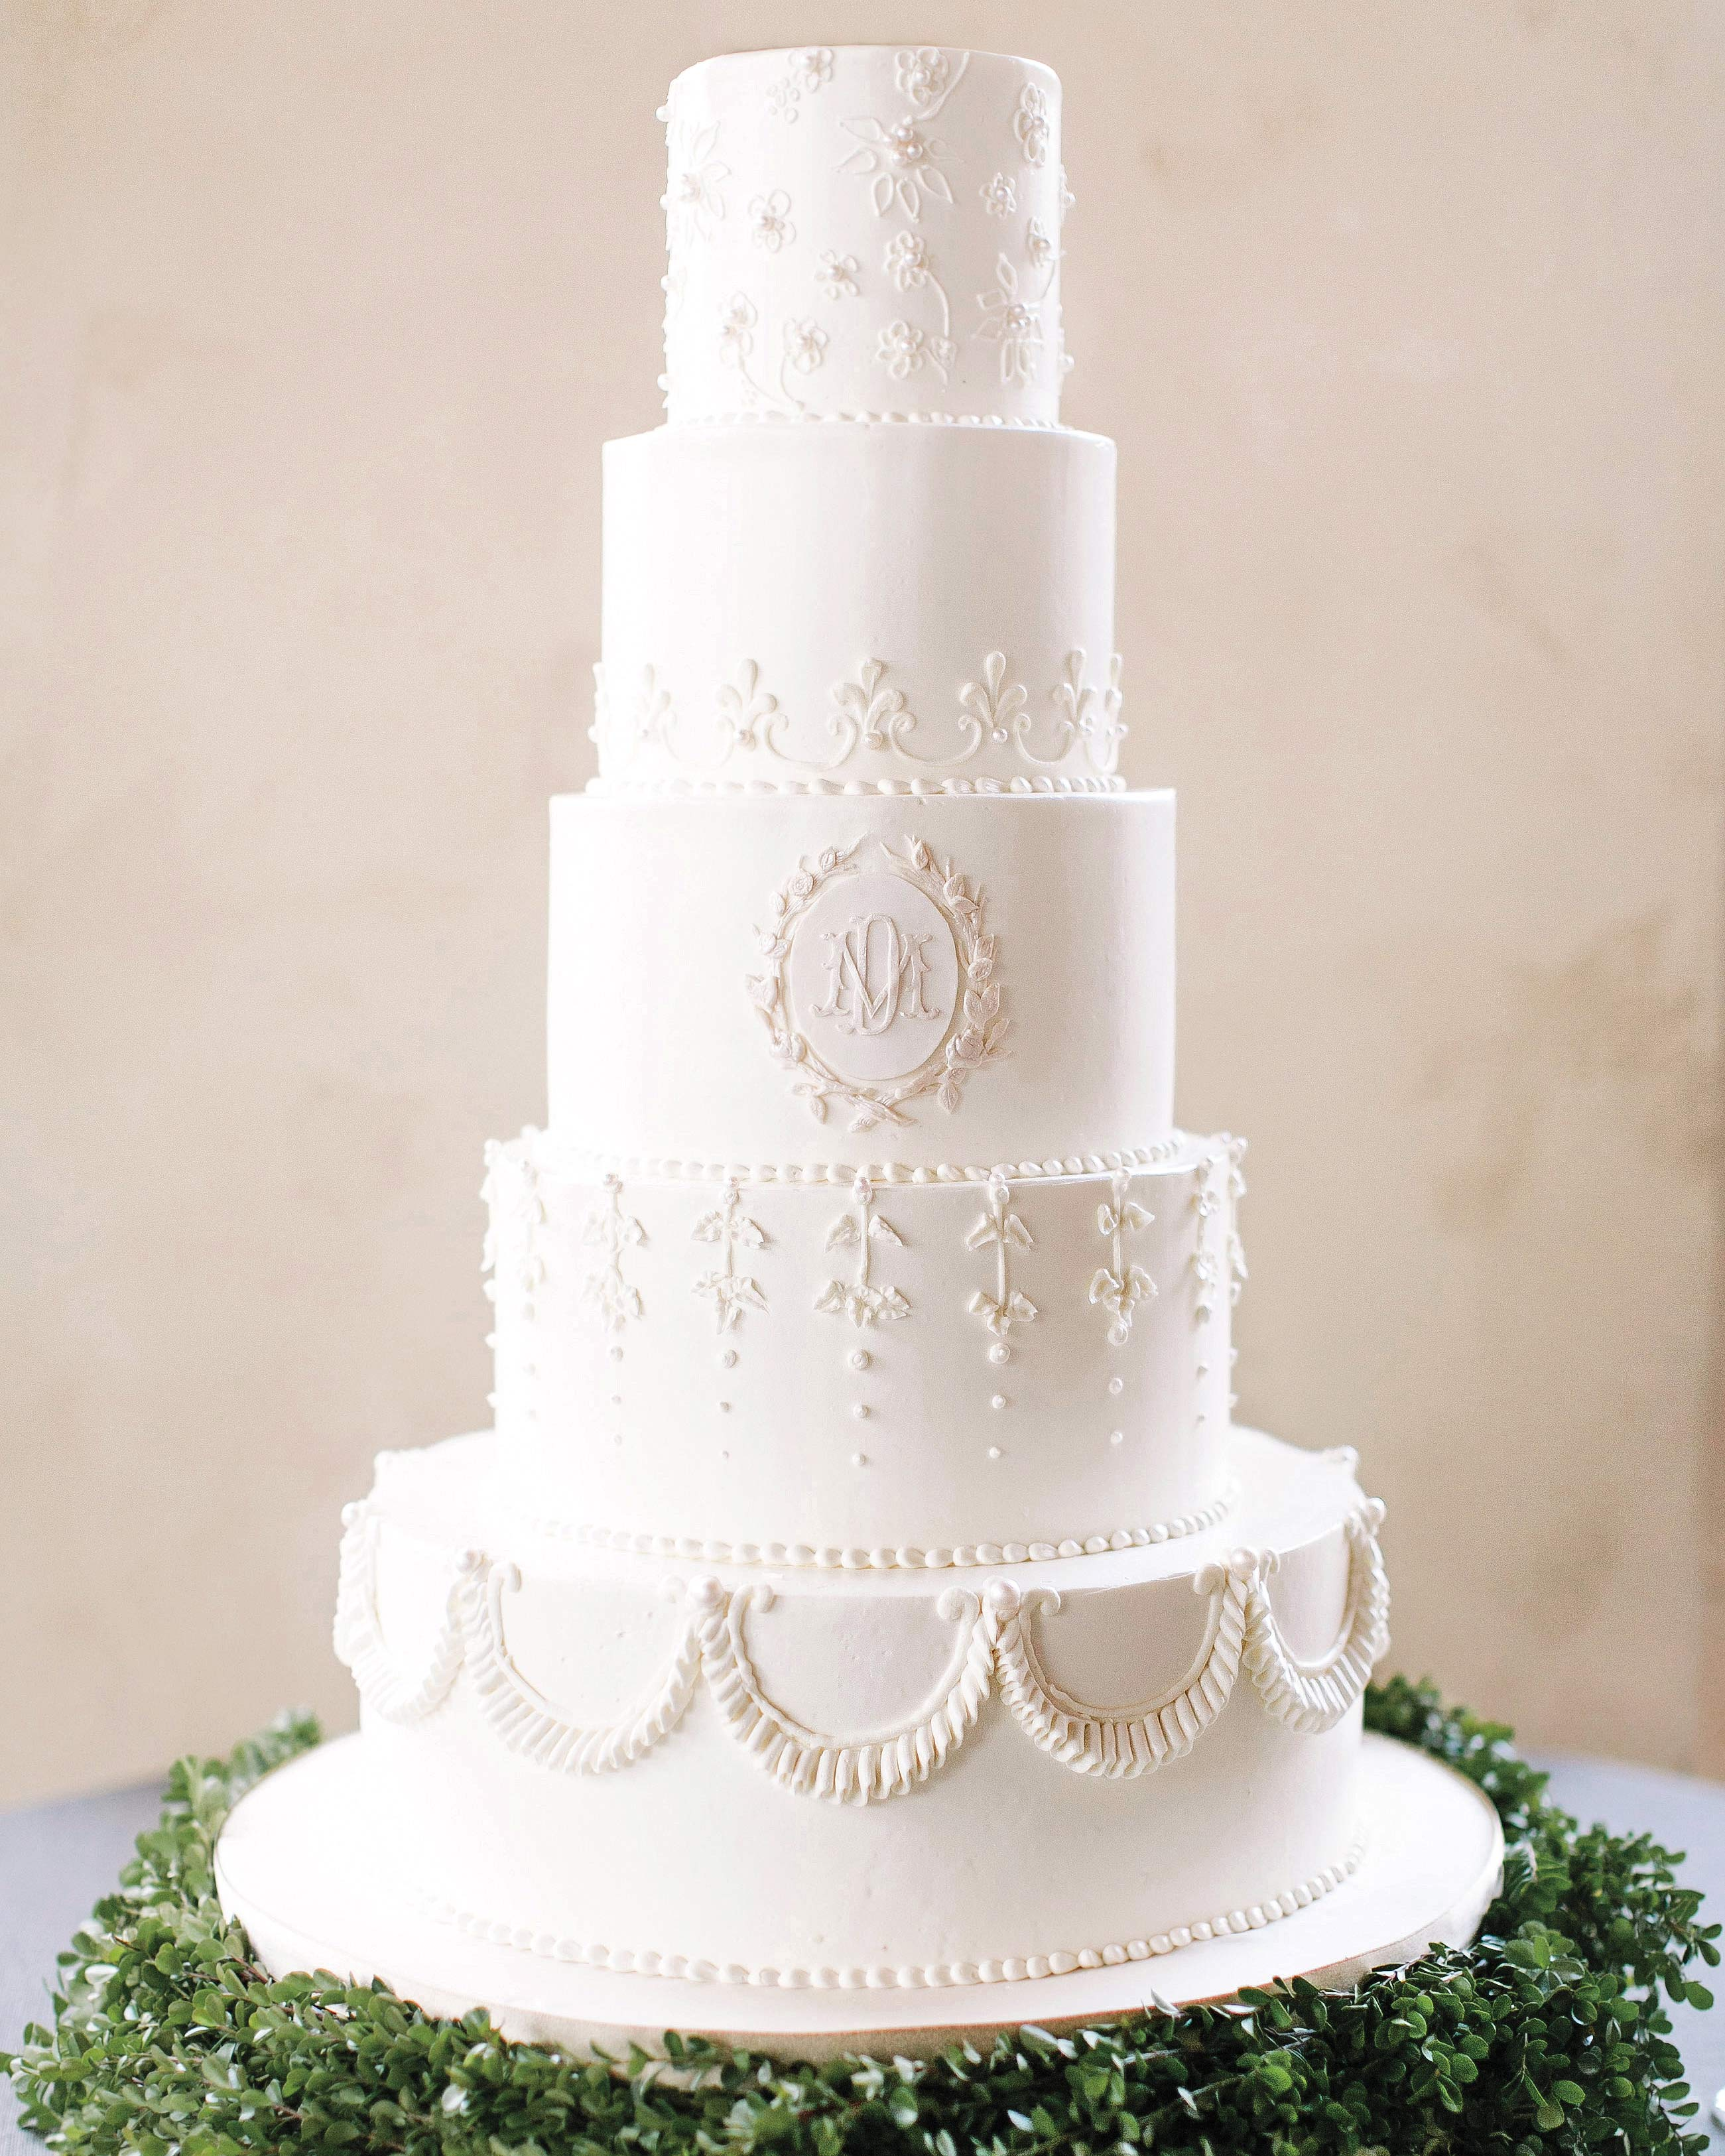 mmallory-diego-wedding-texas-white-cake-087-s112628.jpg